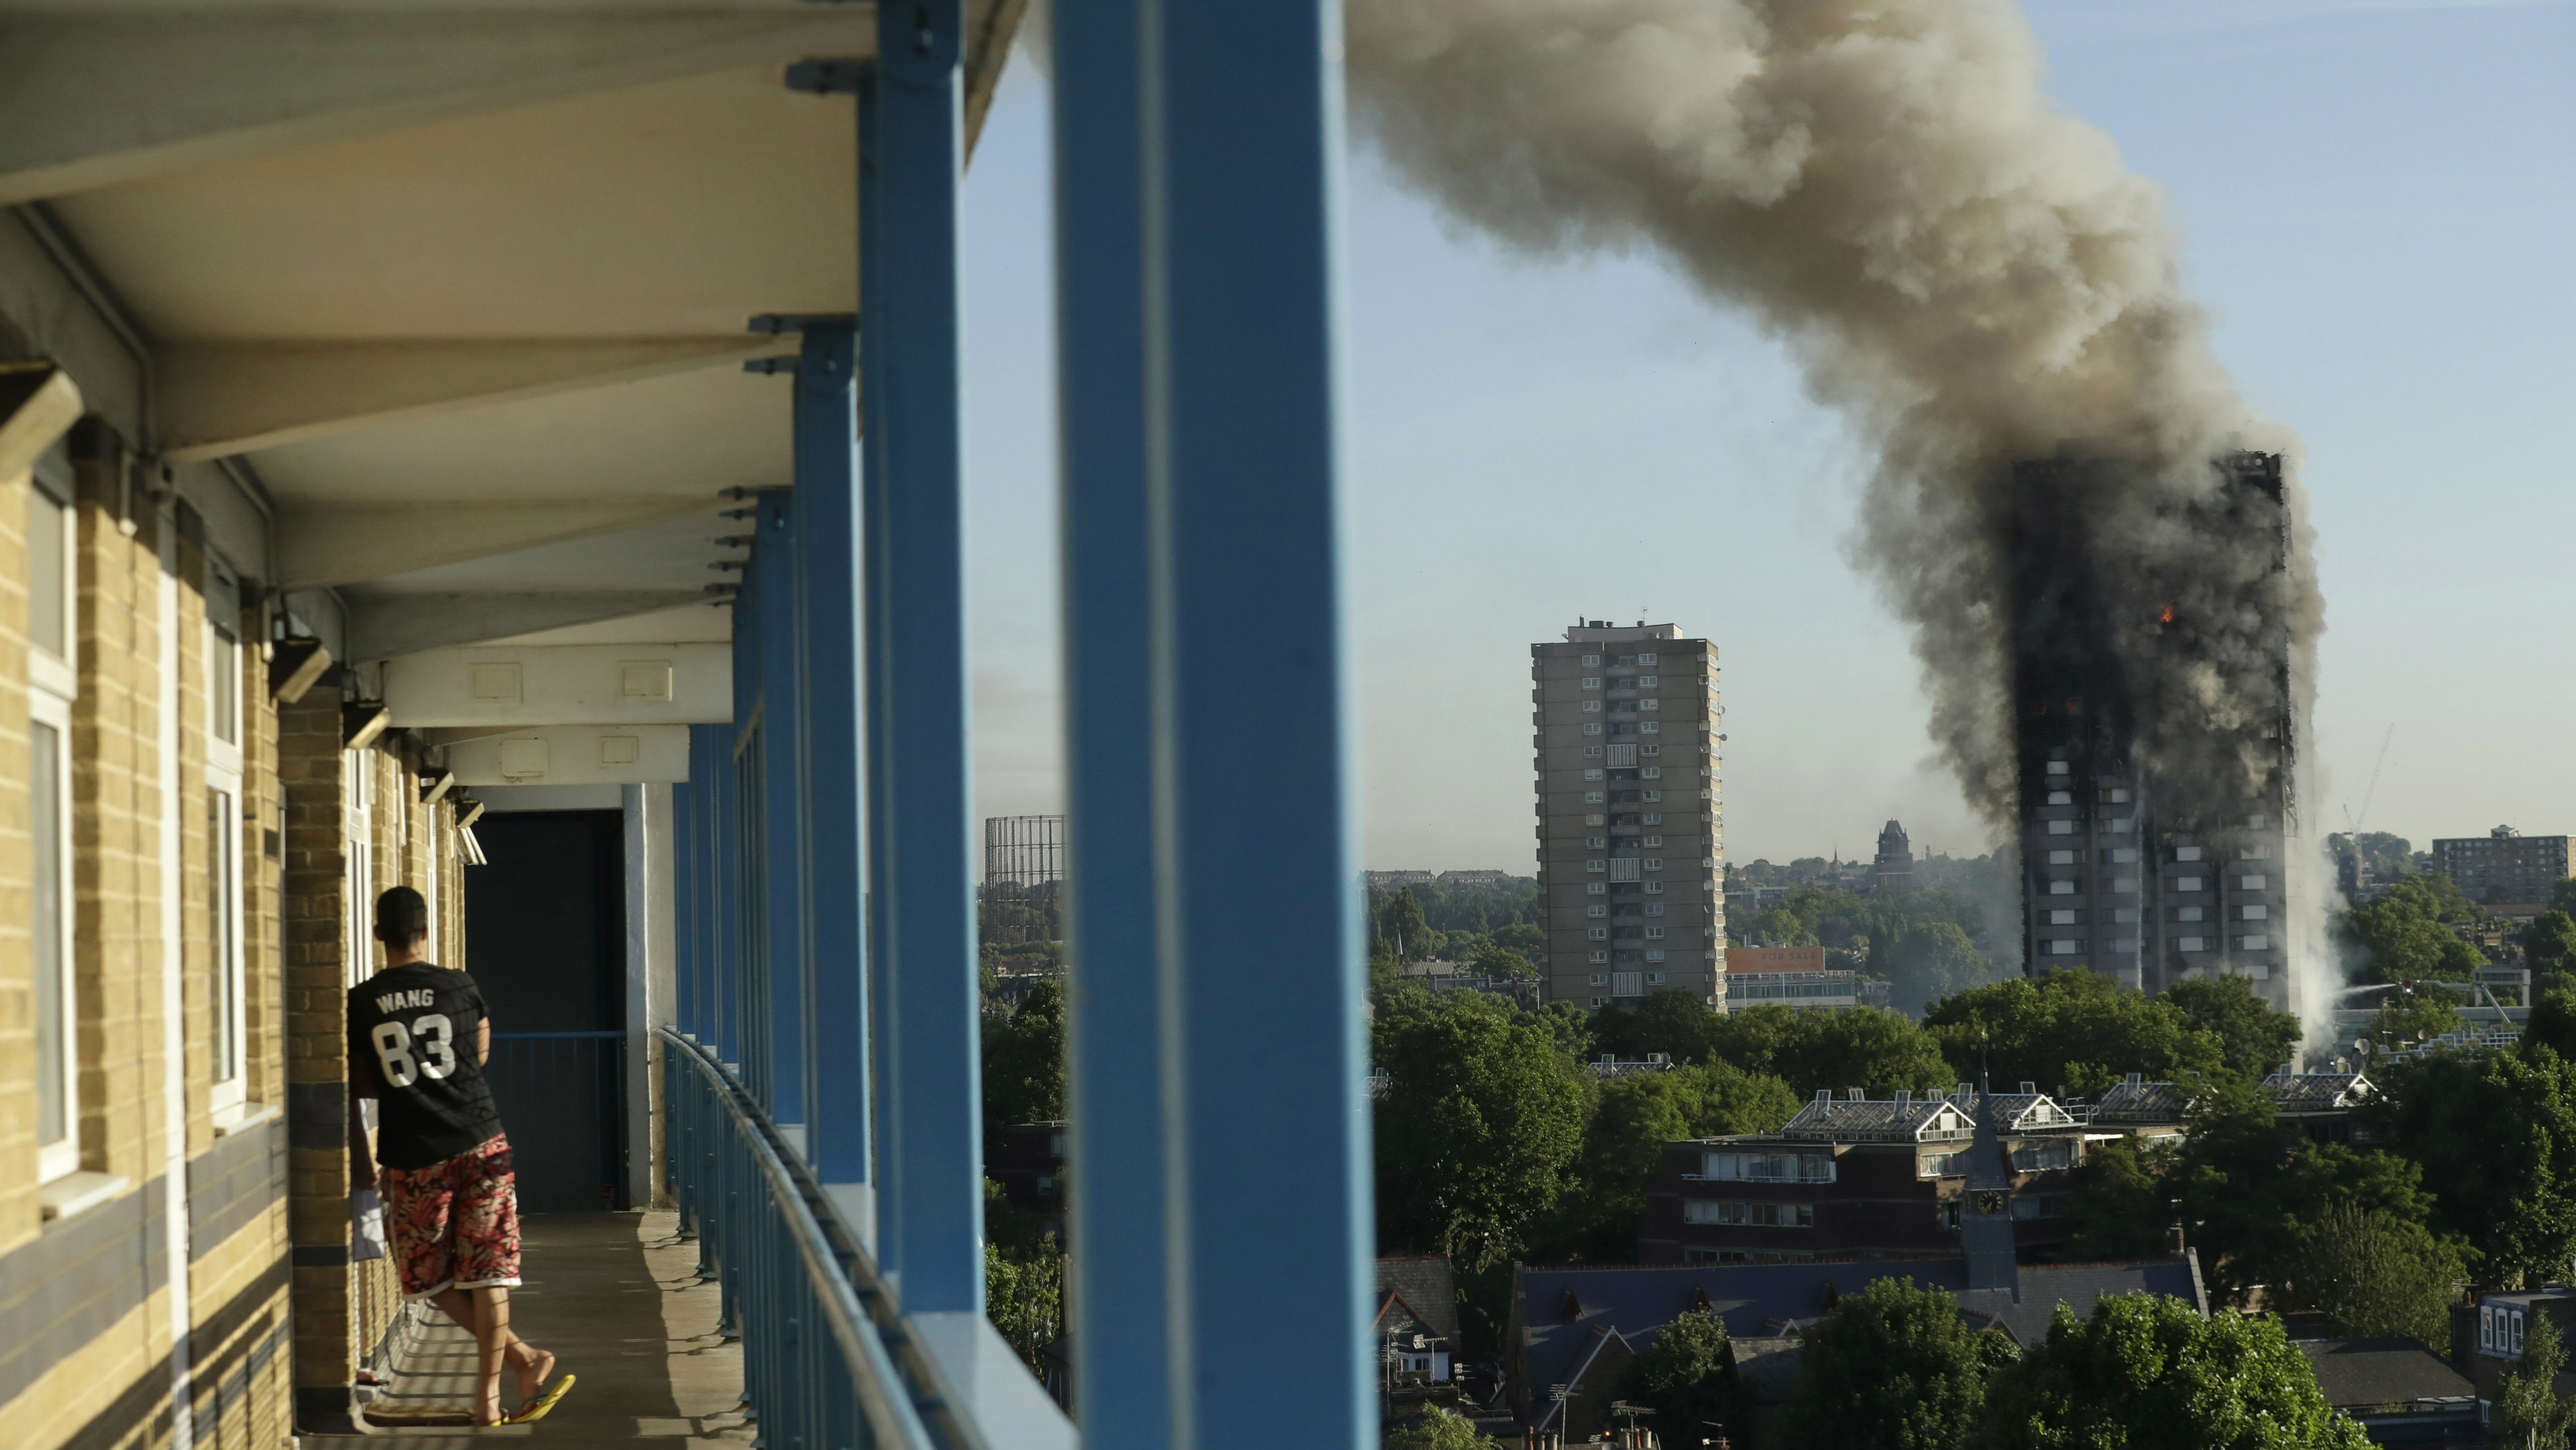 A resident in a nearby building watches smoke rise from a building on fire in London, Wednesday, June 14, 2017. A massive fire raced through the 27-story high-rise apartment building in west London early Wednesday, sending at least 30 people to hospitals, emergency officials said.